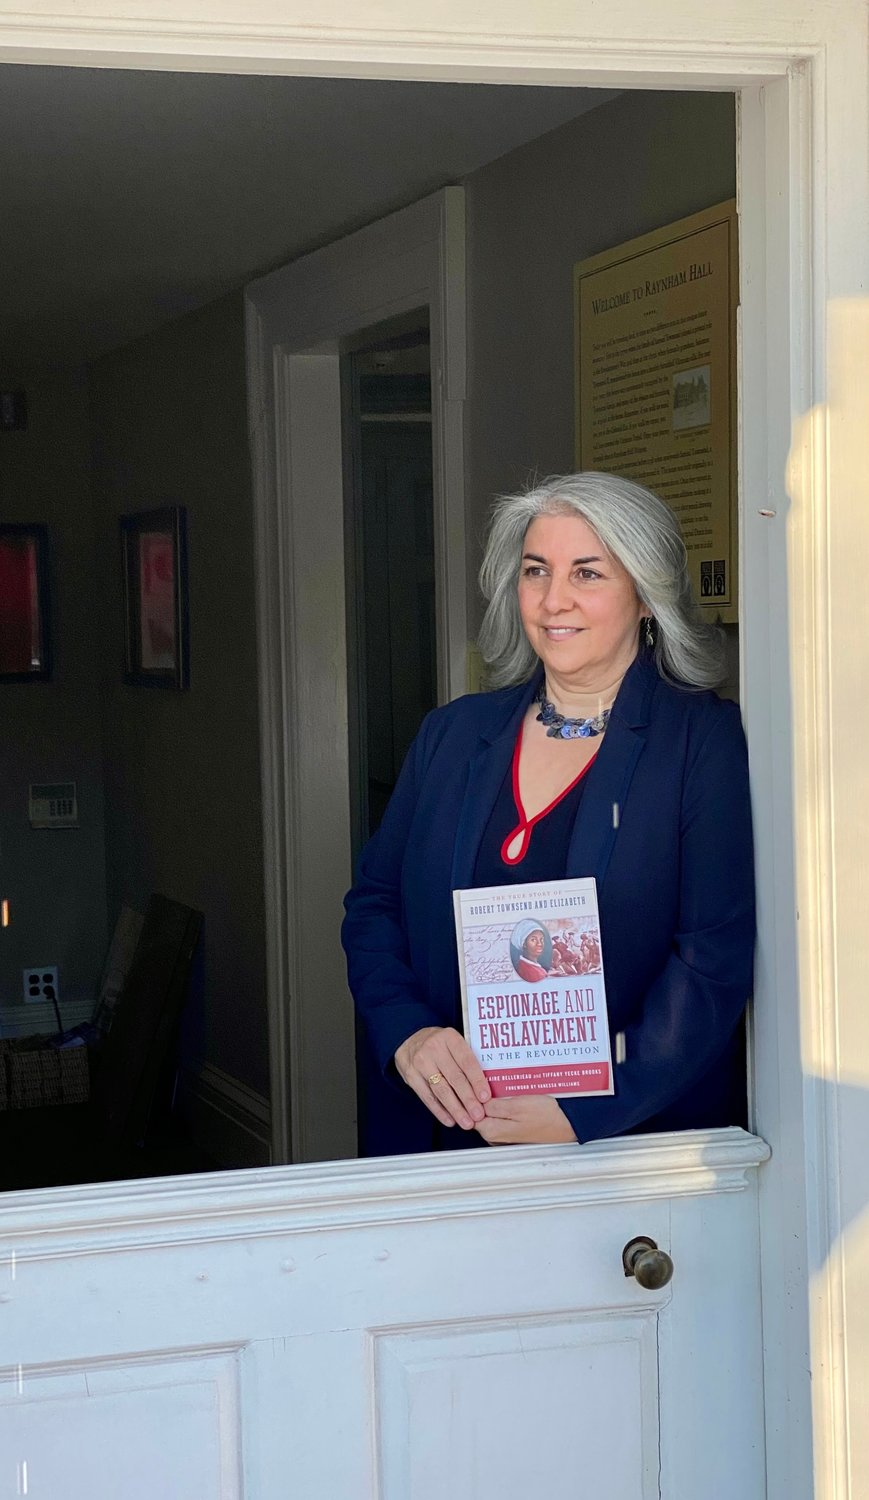 Claire Bellerjeau, historian and education director at Raynham Hall Museum, has co-authored a book that explores the life and times of Liss, an African-American slave.